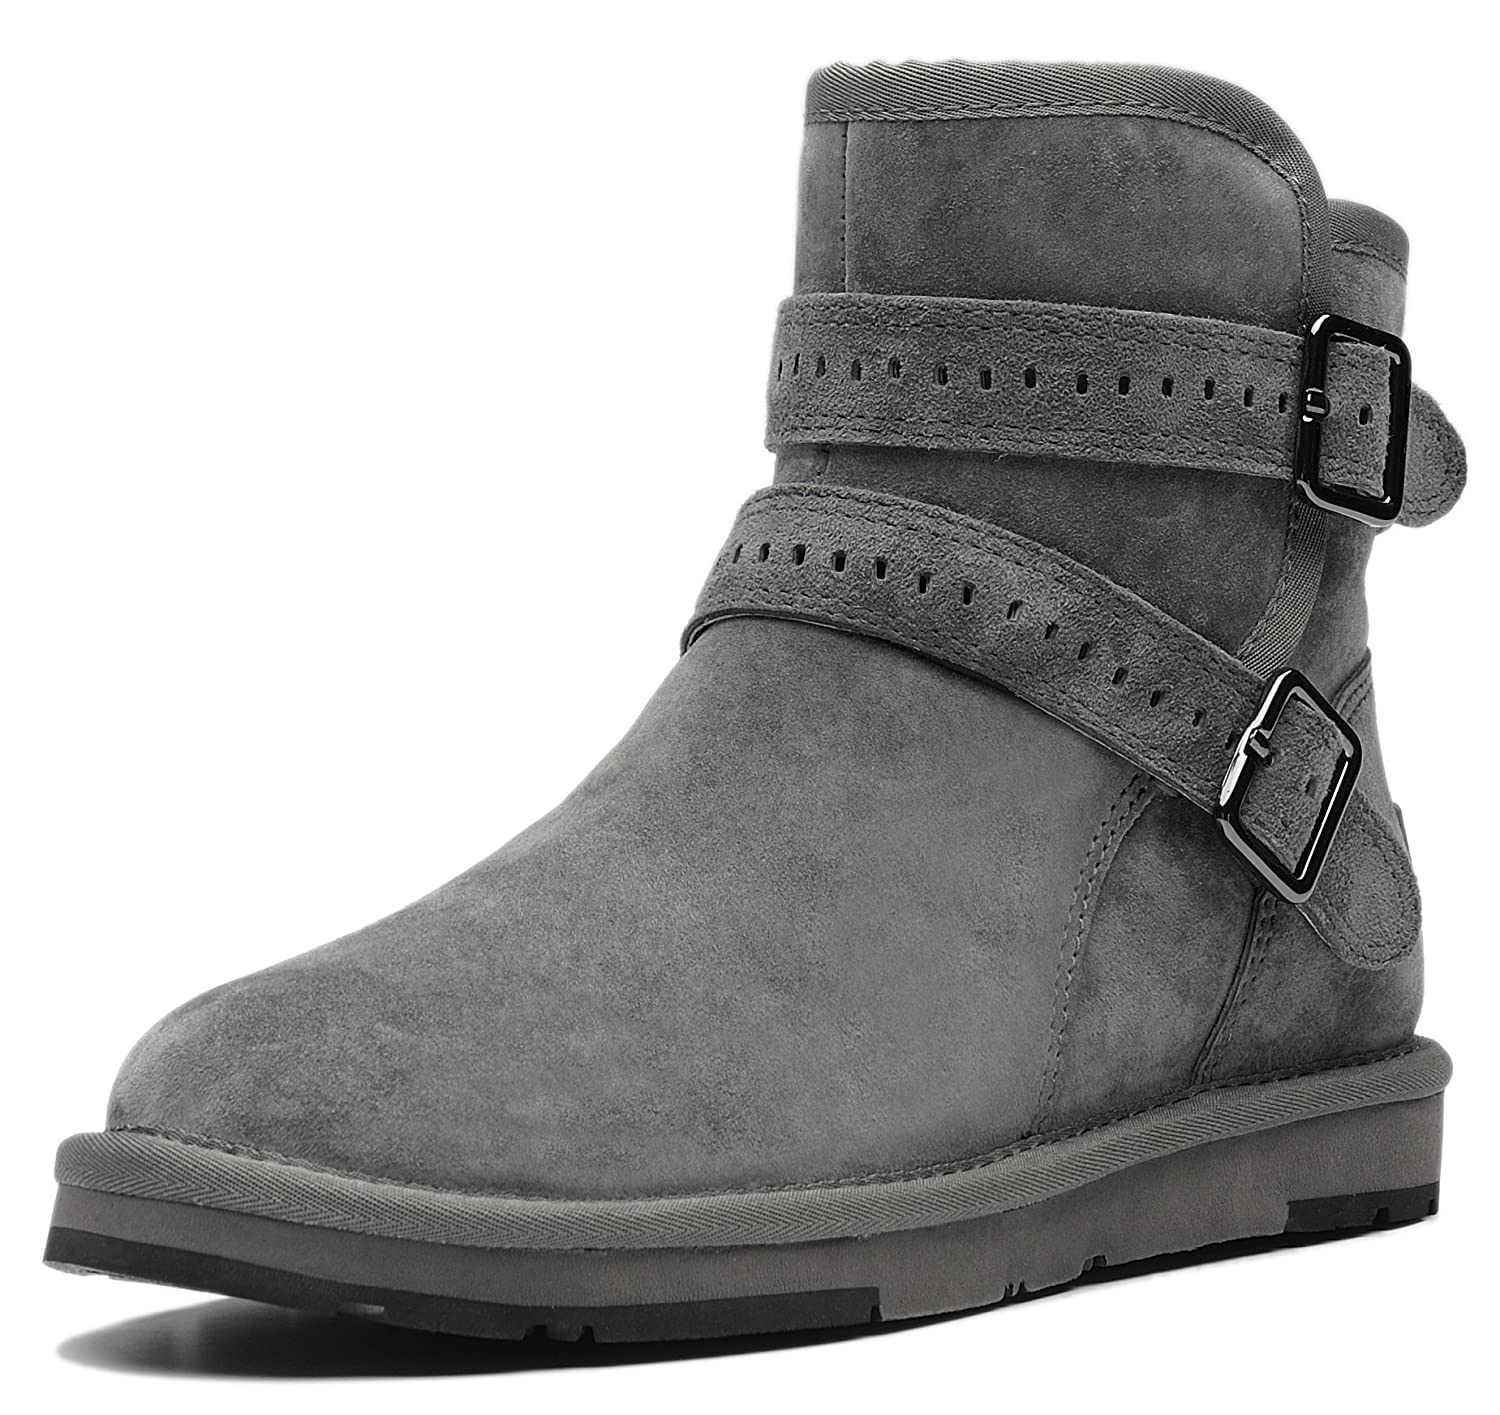 AU&MU Women's Full Fur Sheepskin Suede Winter Snow Boots B073SZXMRZ 7 B(M) US|Grey 1